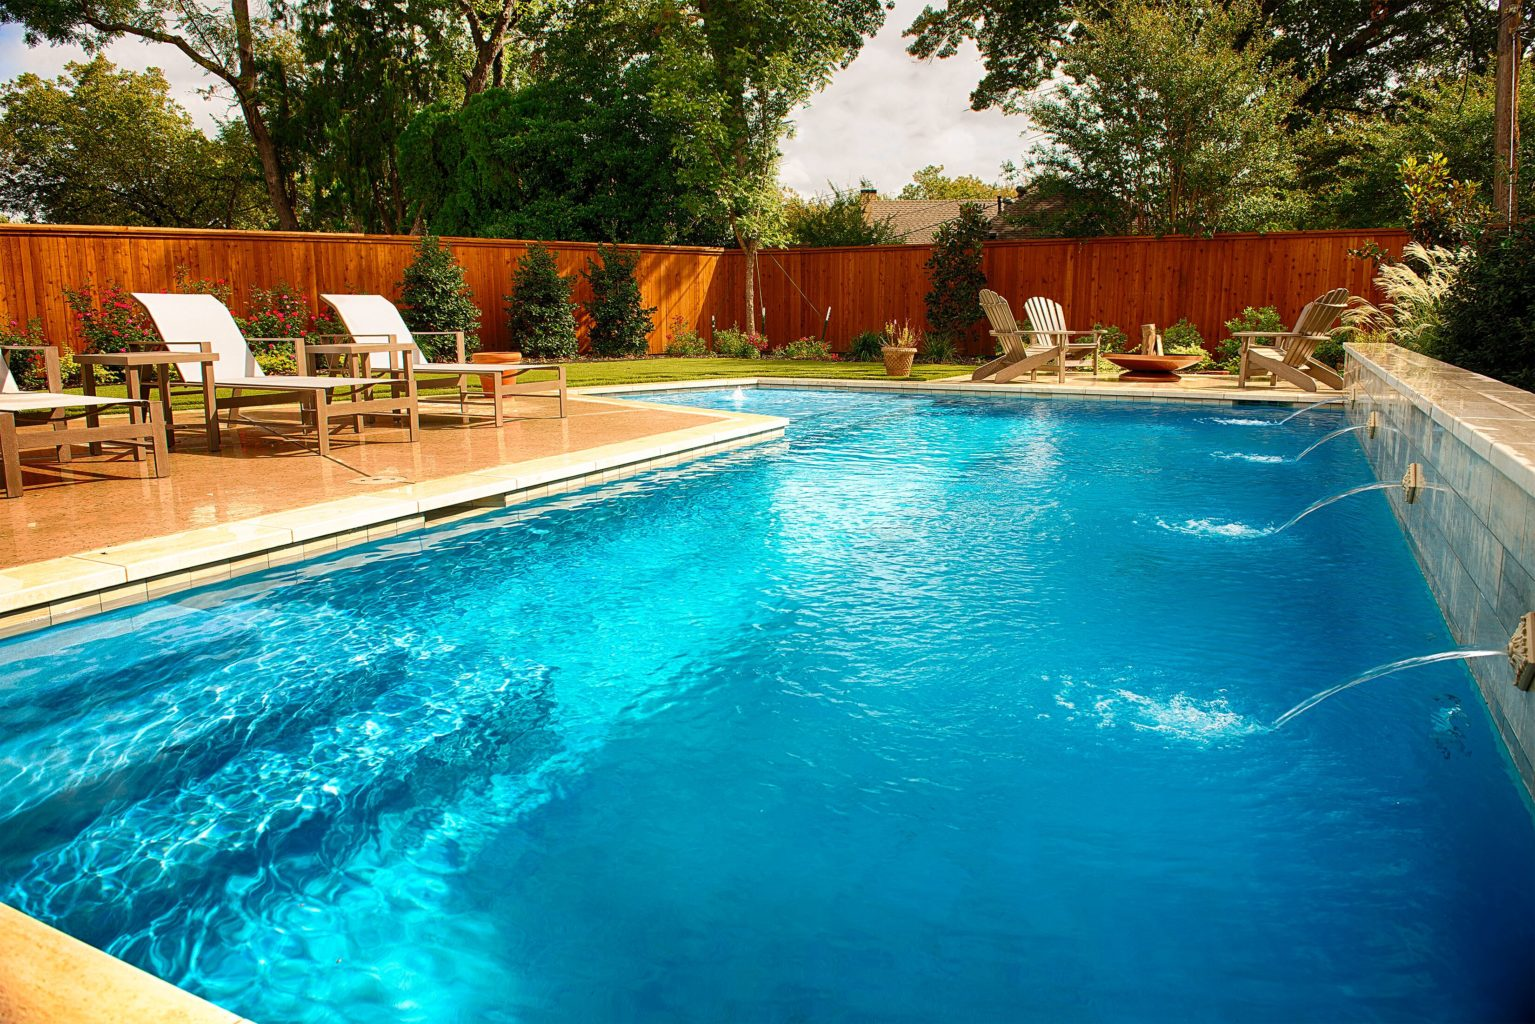 This is one last beautiful look at the gorgeous and intricate Canturbury Job. We absolutely love this pool and all of the beautiful features that it possesses!